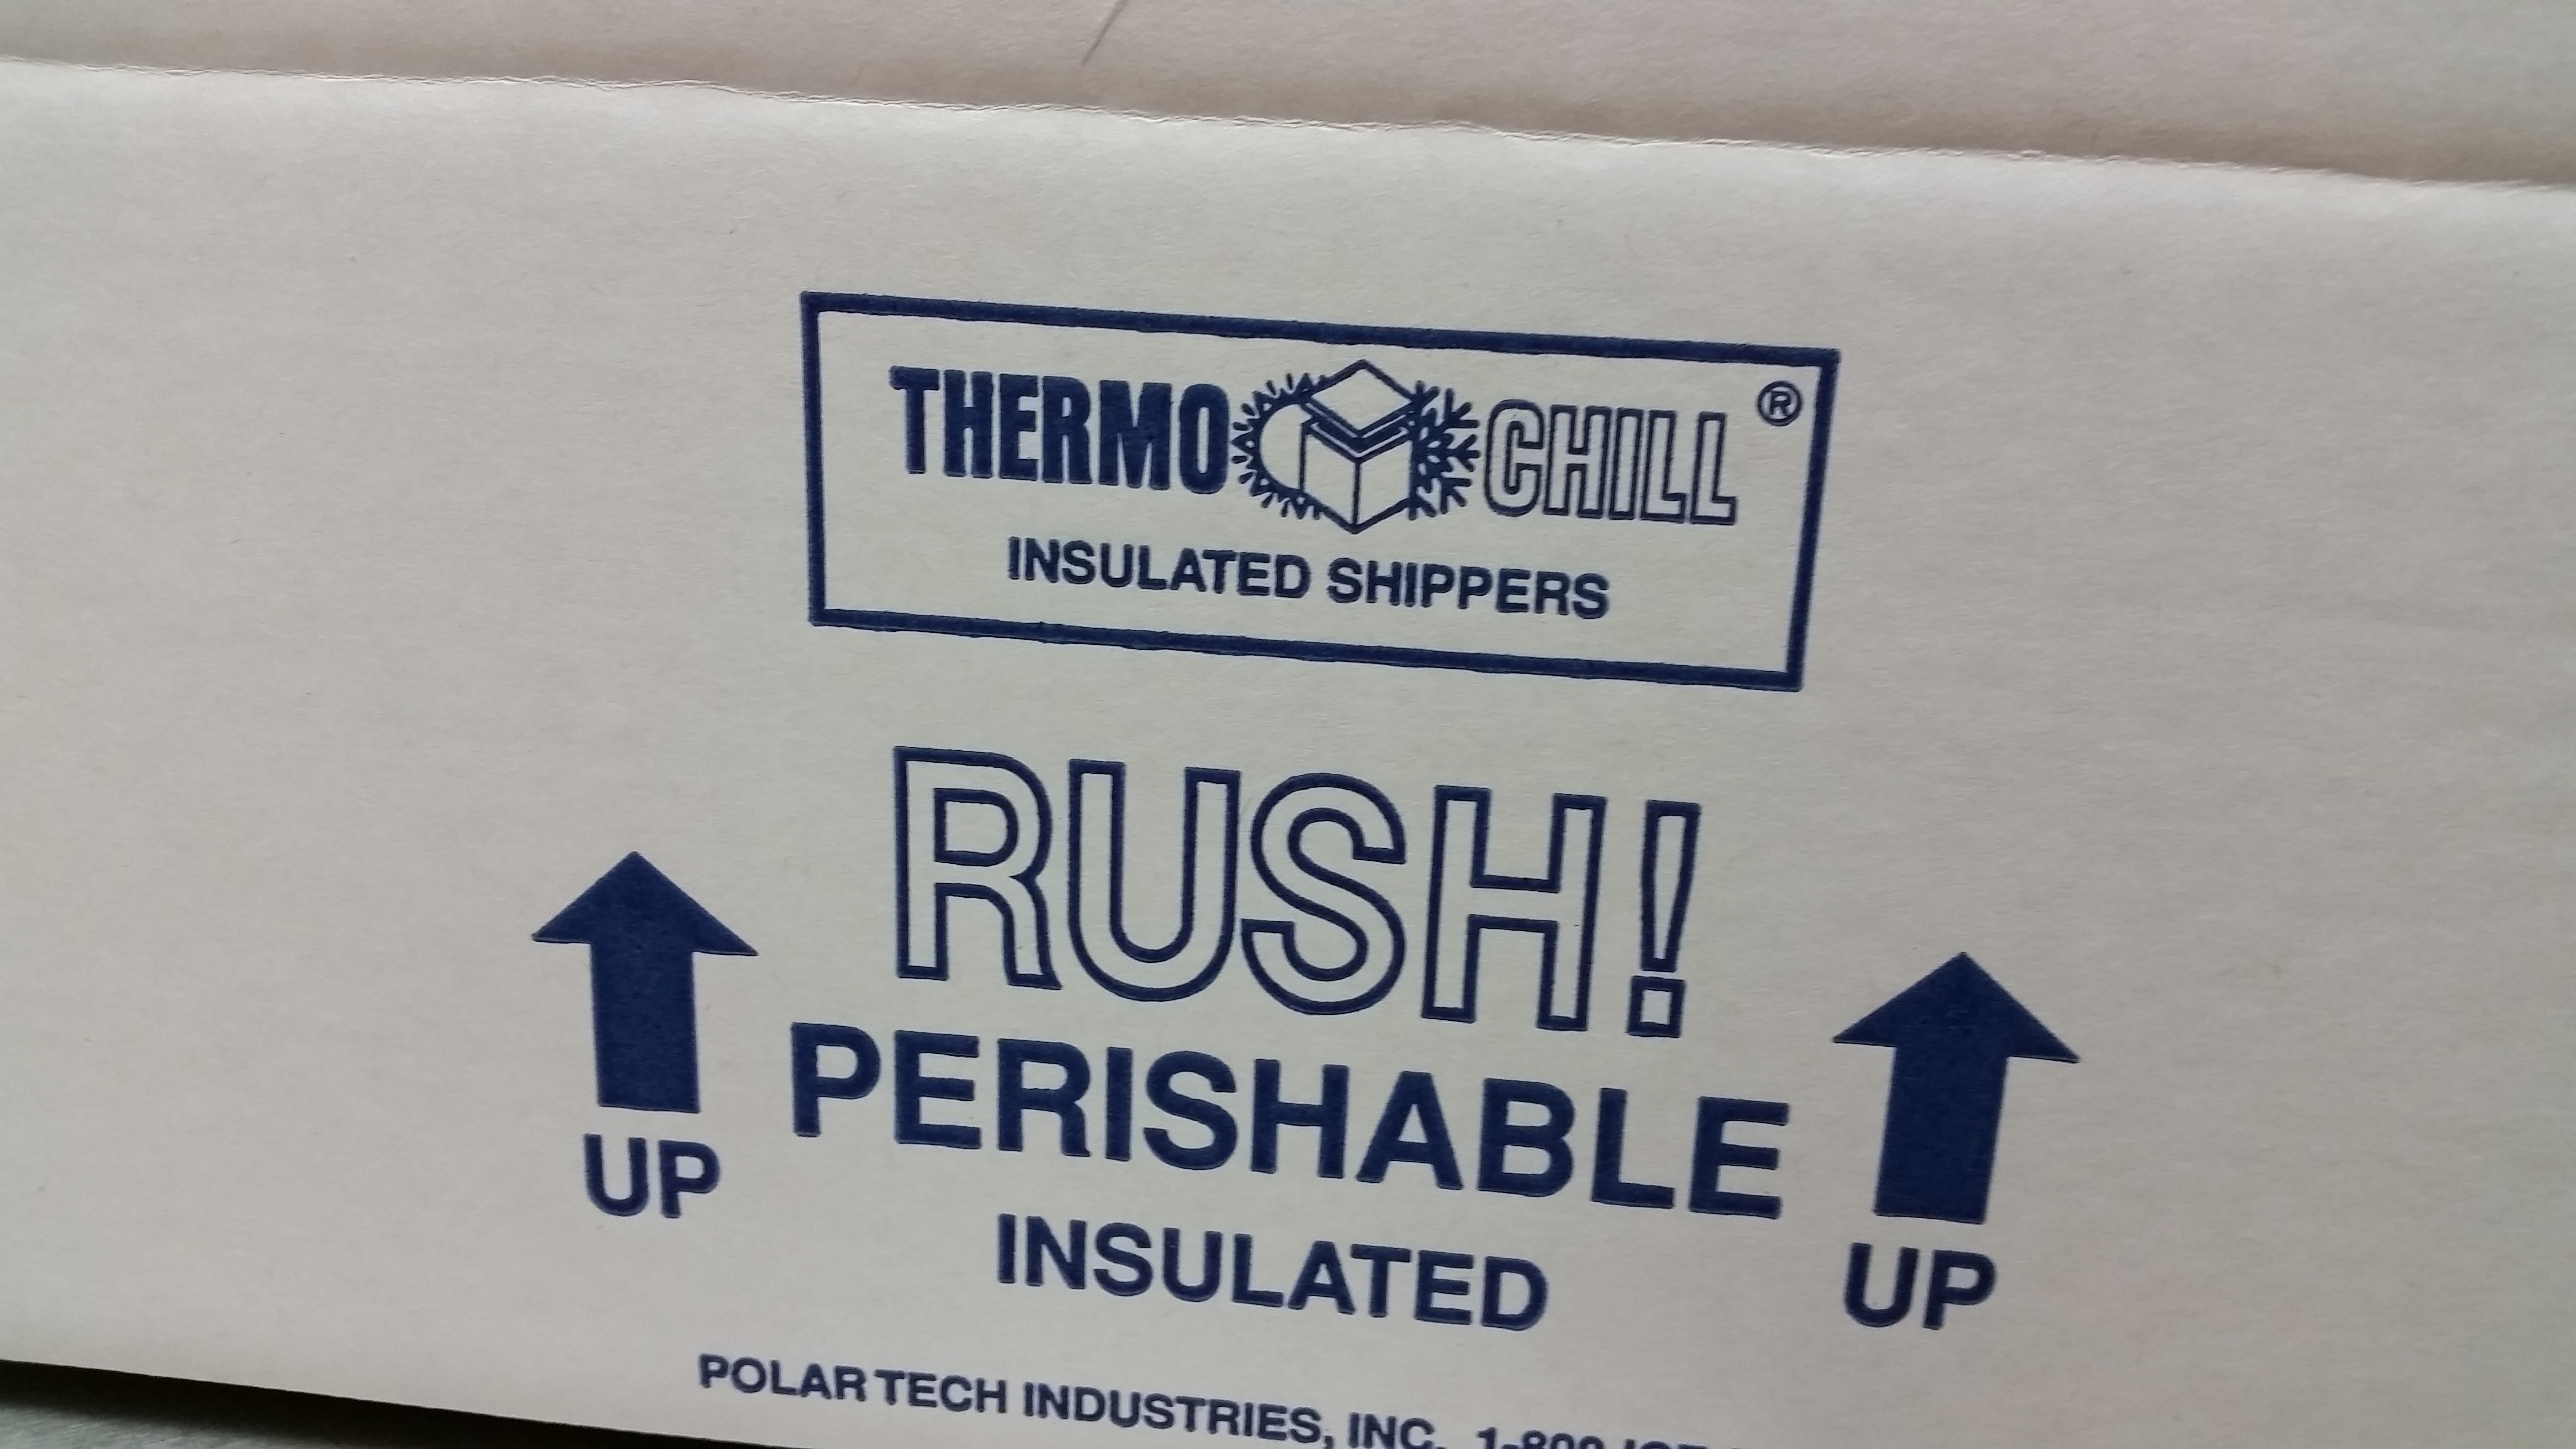 Insulated Container for up to 2 lbs. of Product Ordered ISO12